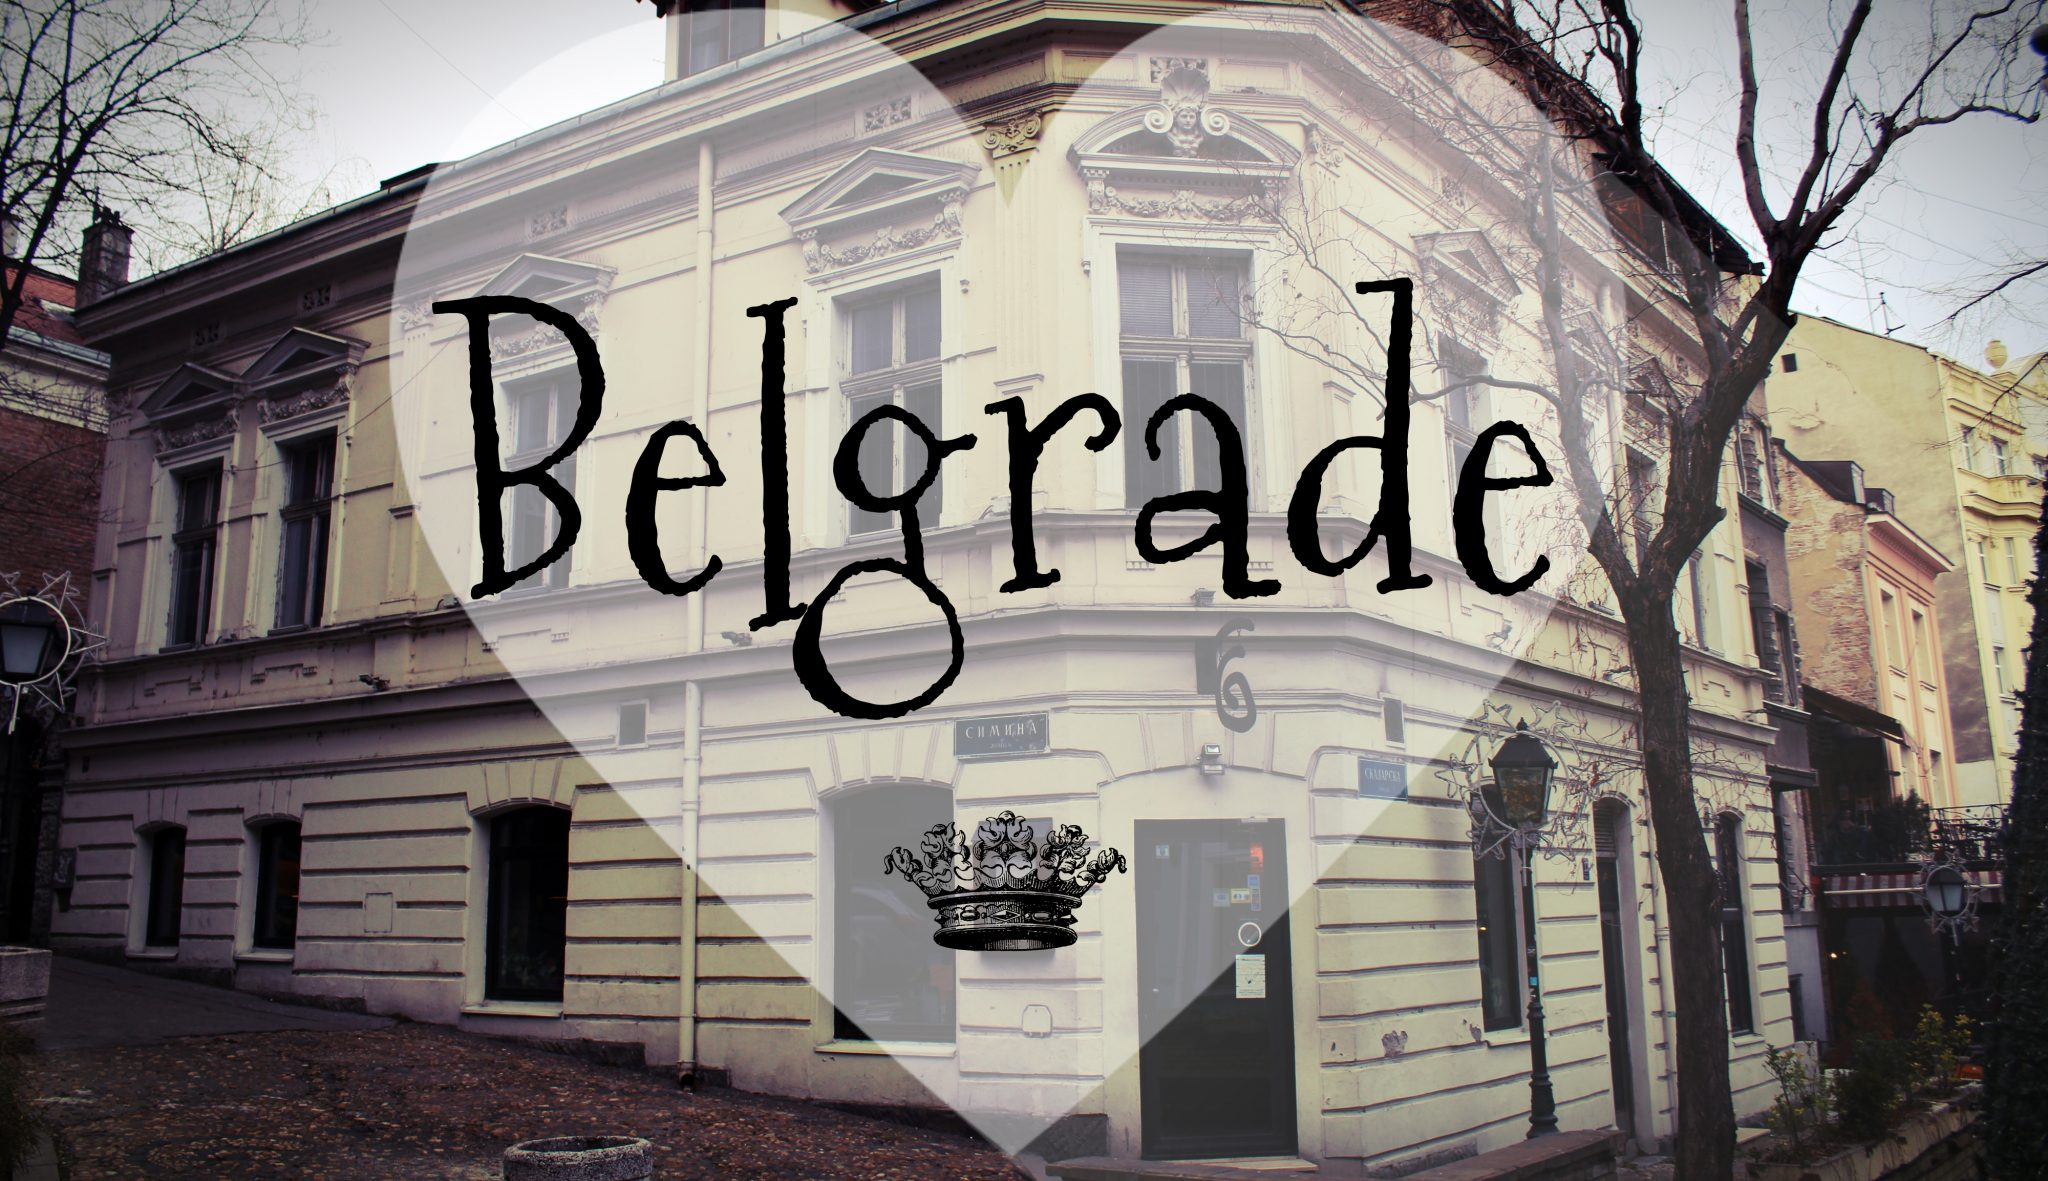 One day at Belgrade